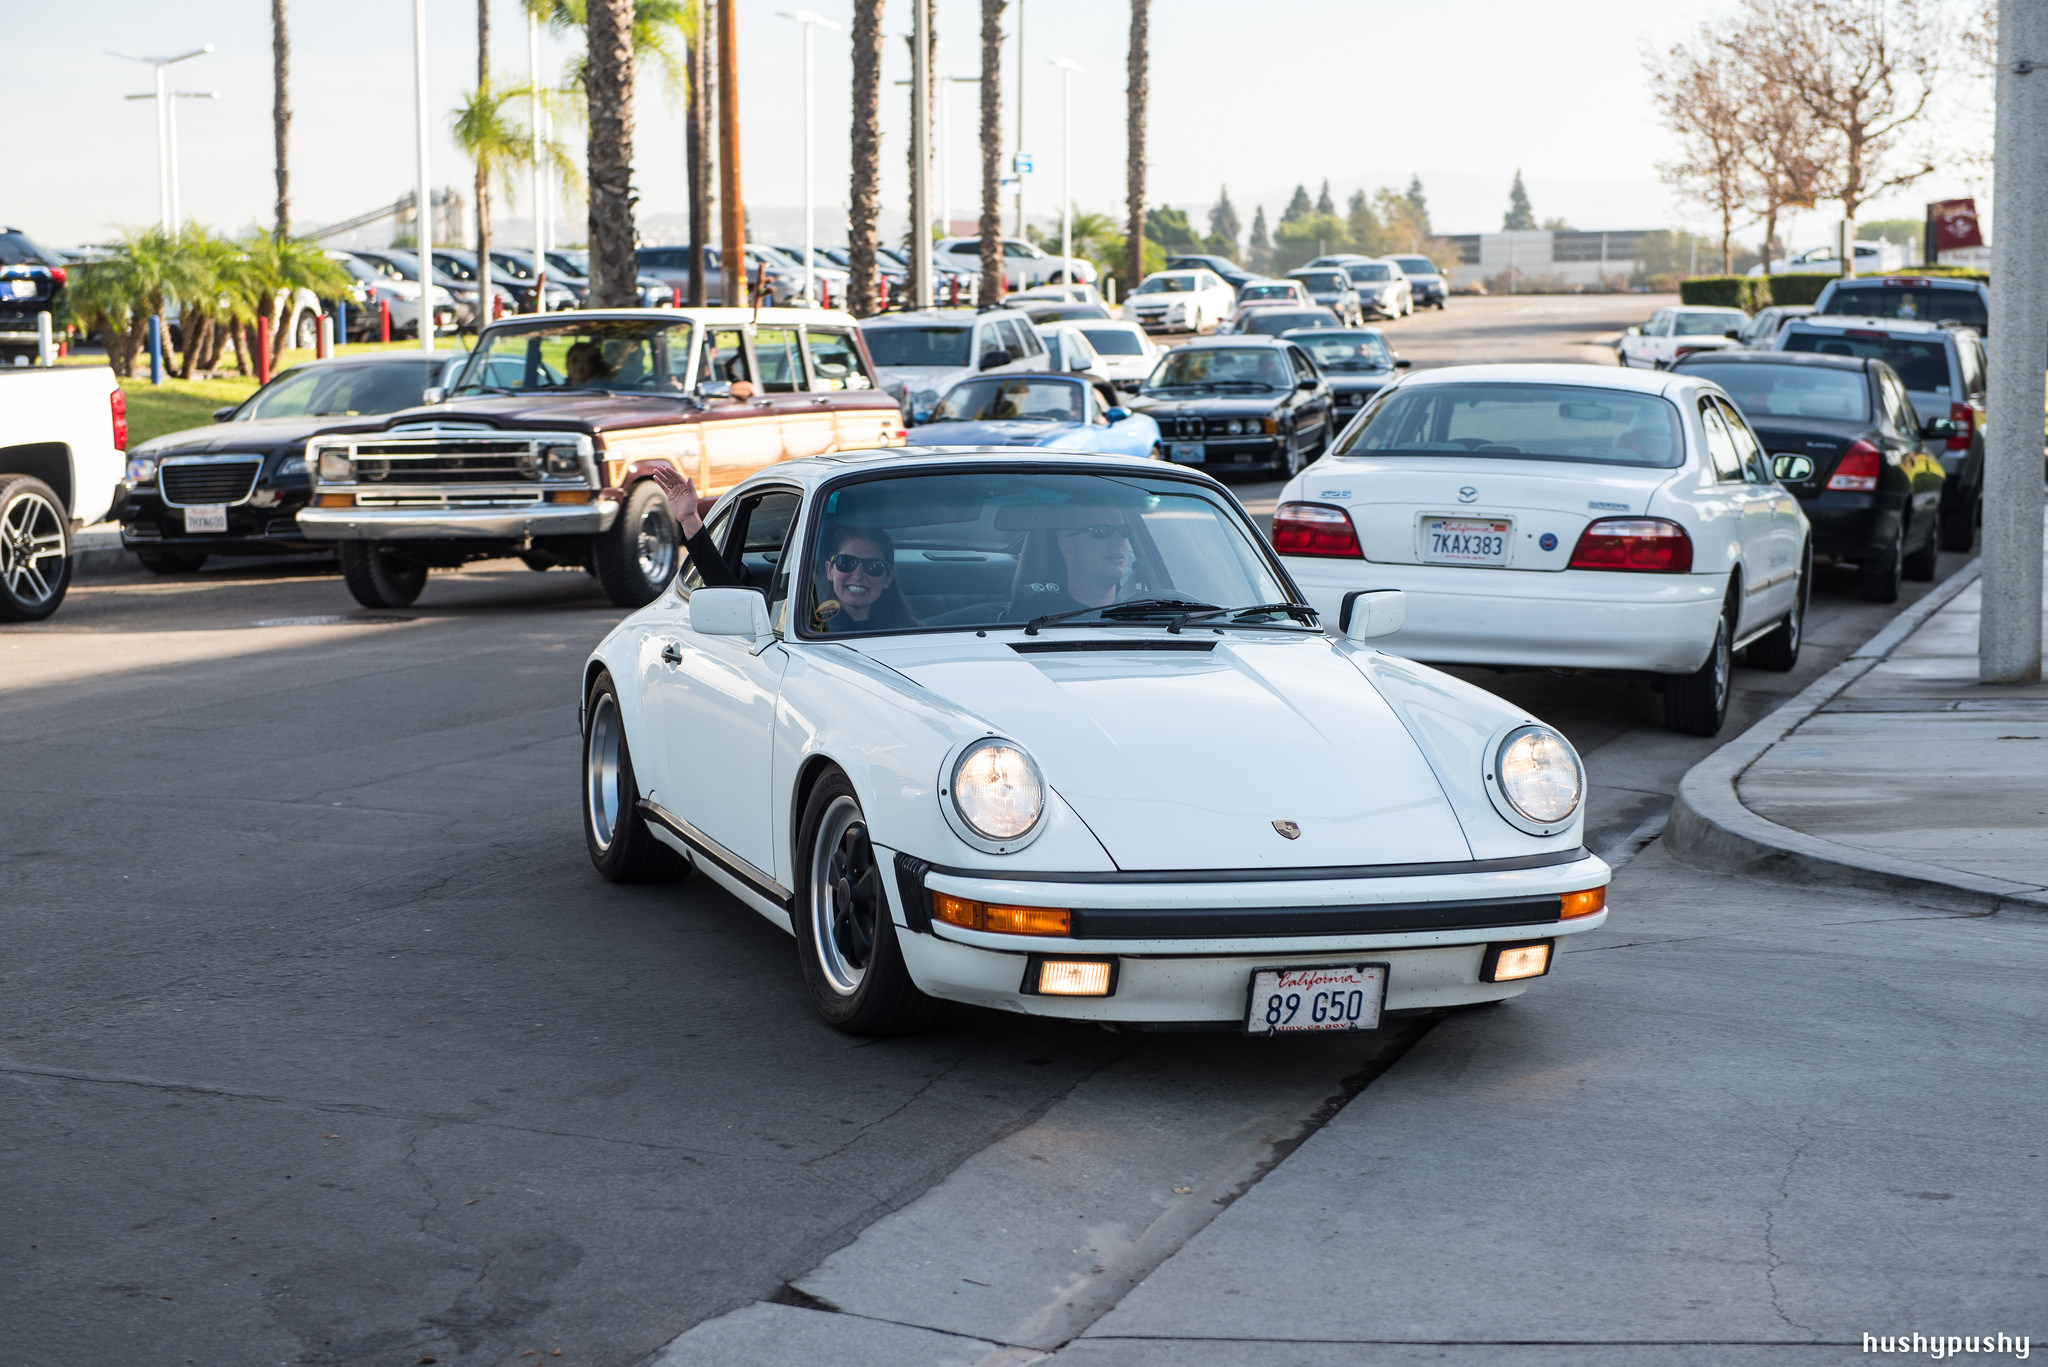 White 1989 Carrera 3.2 pulls into Radwood 2 as the passenger waves to the camera